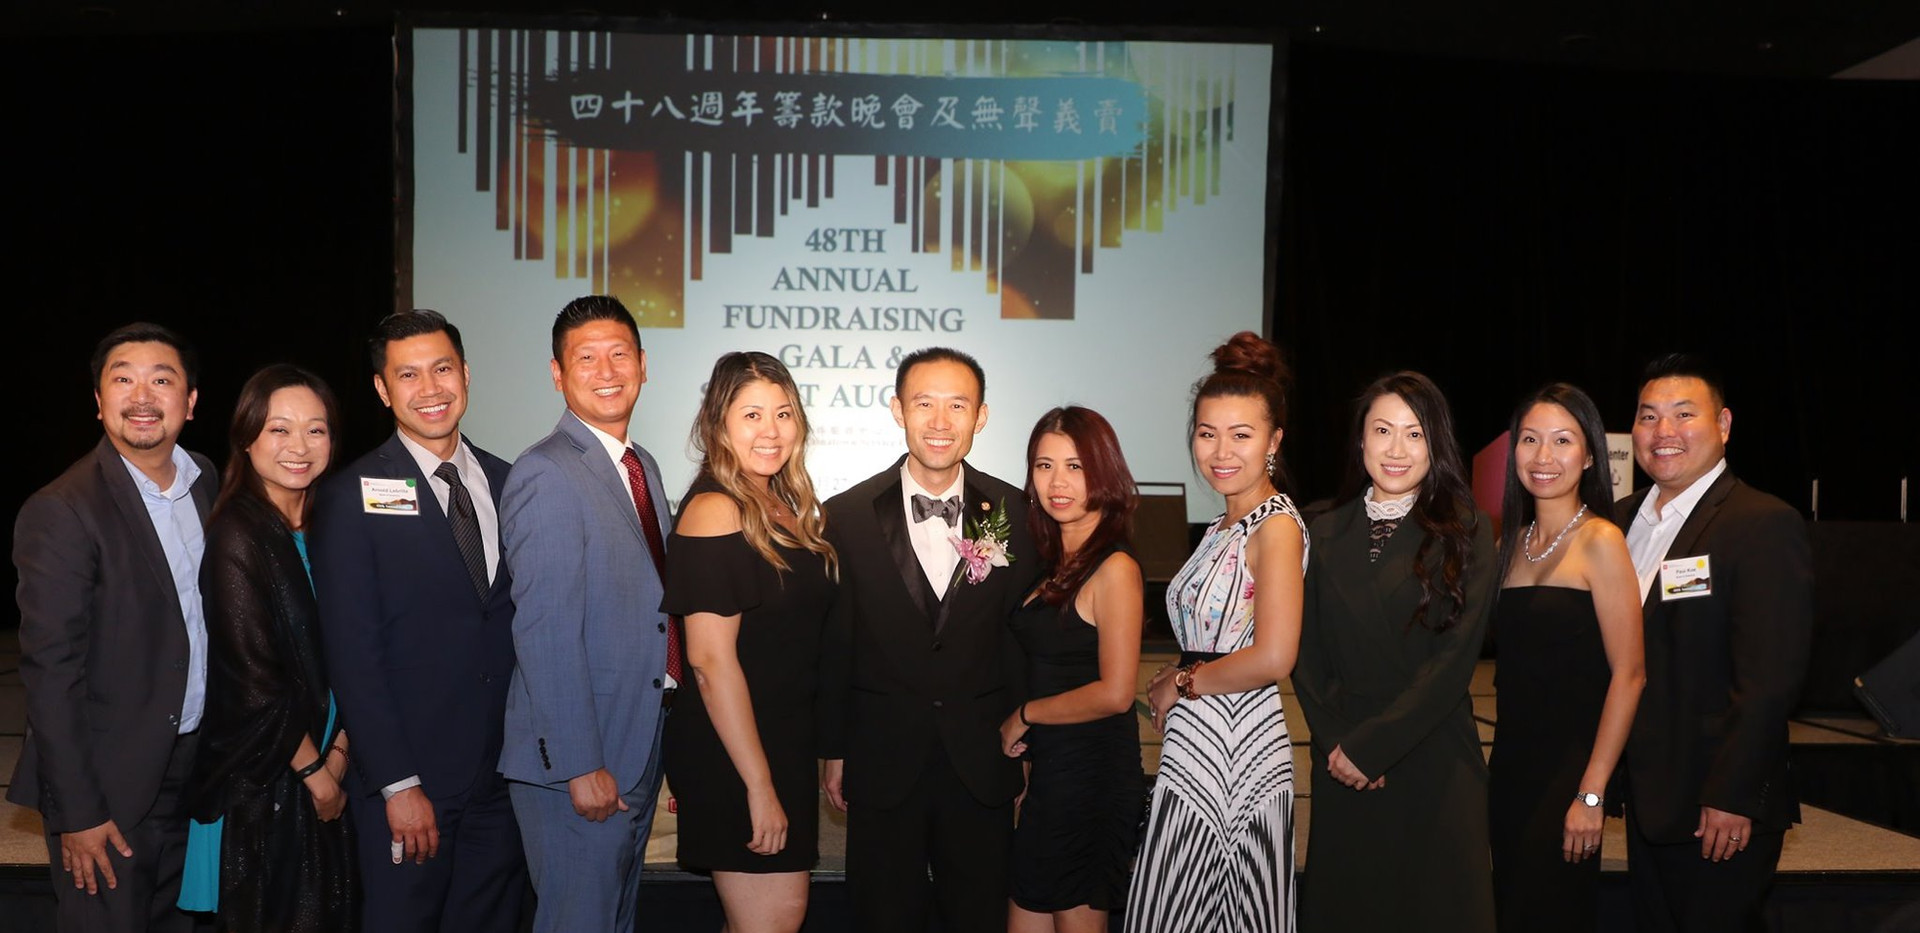 48TH ANNUAL GALA FUNDRAISER